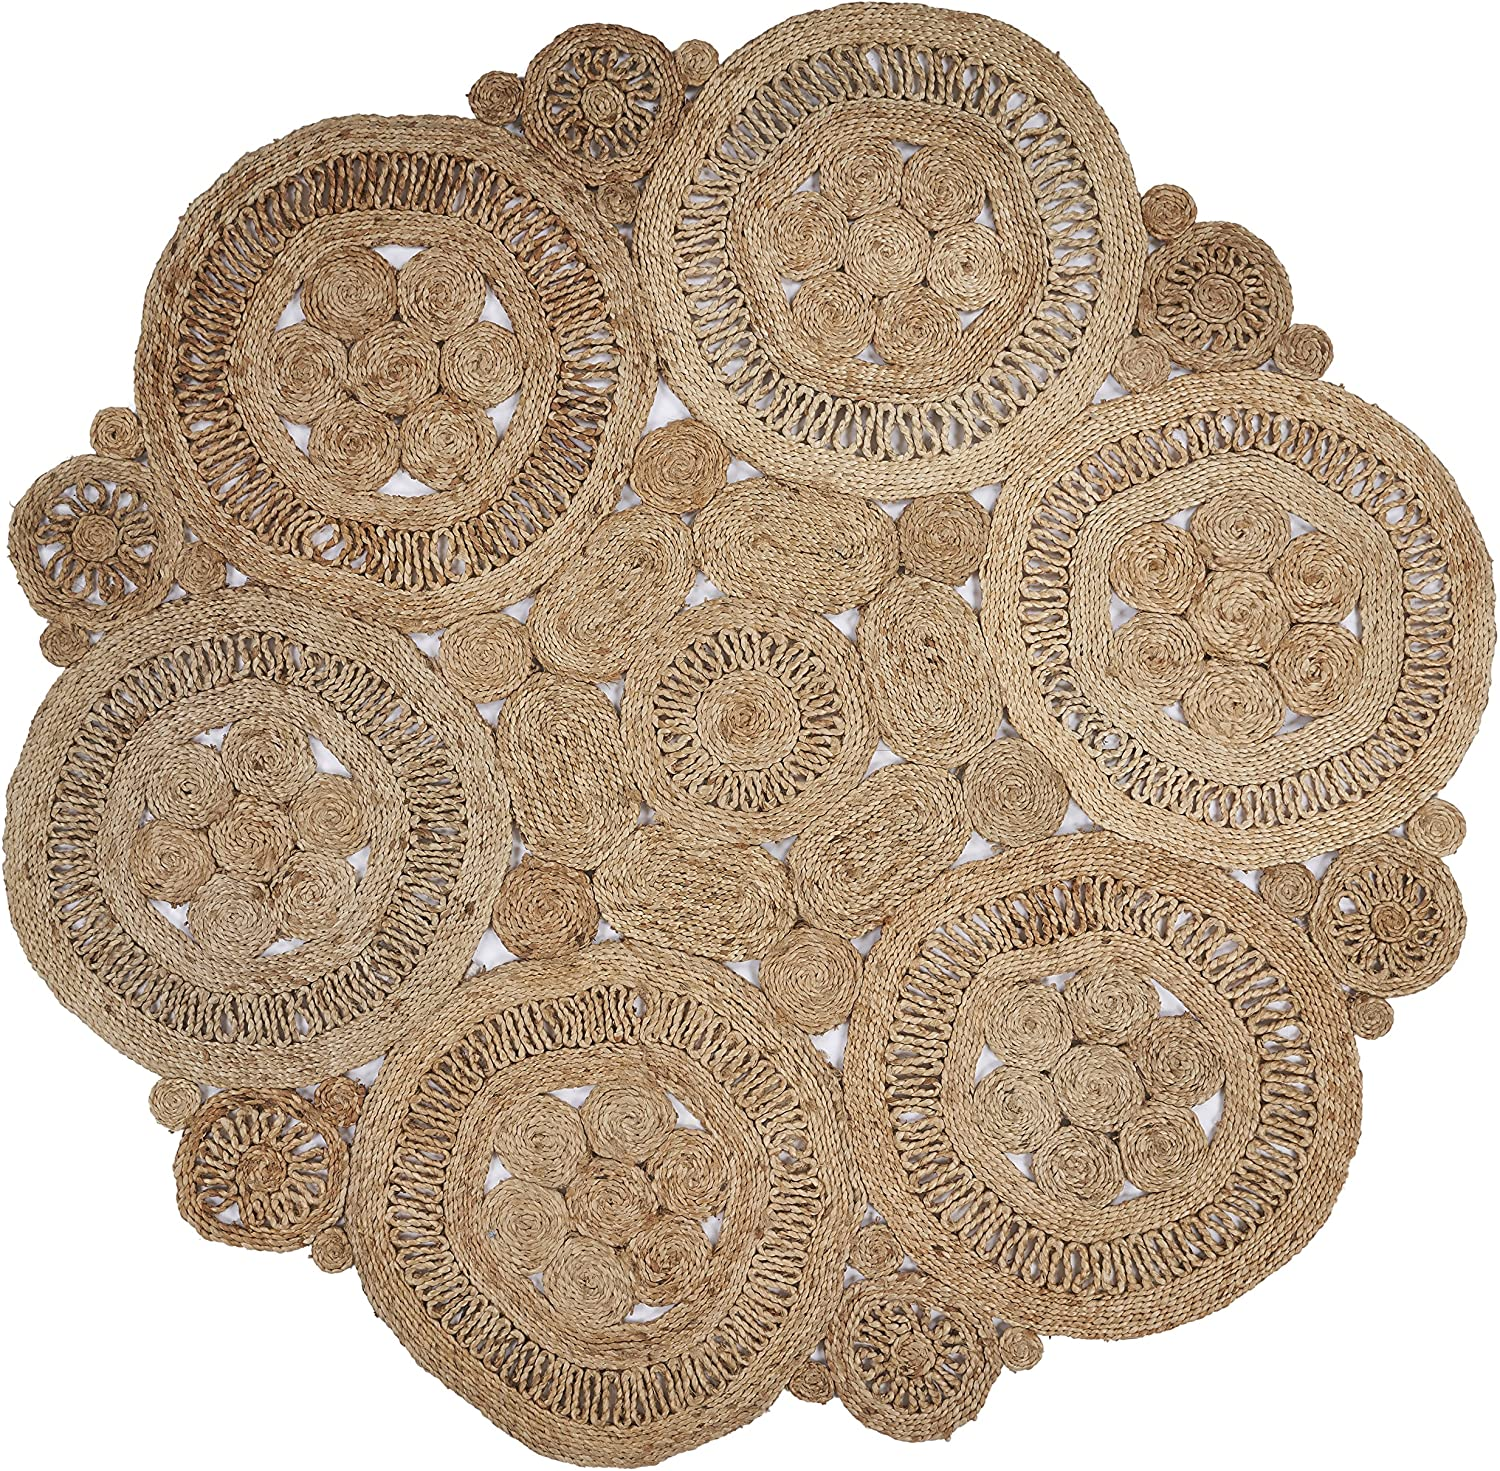 Shop Natural Round X 4 ft Indoor Area Rug from Amazon on Openhaus